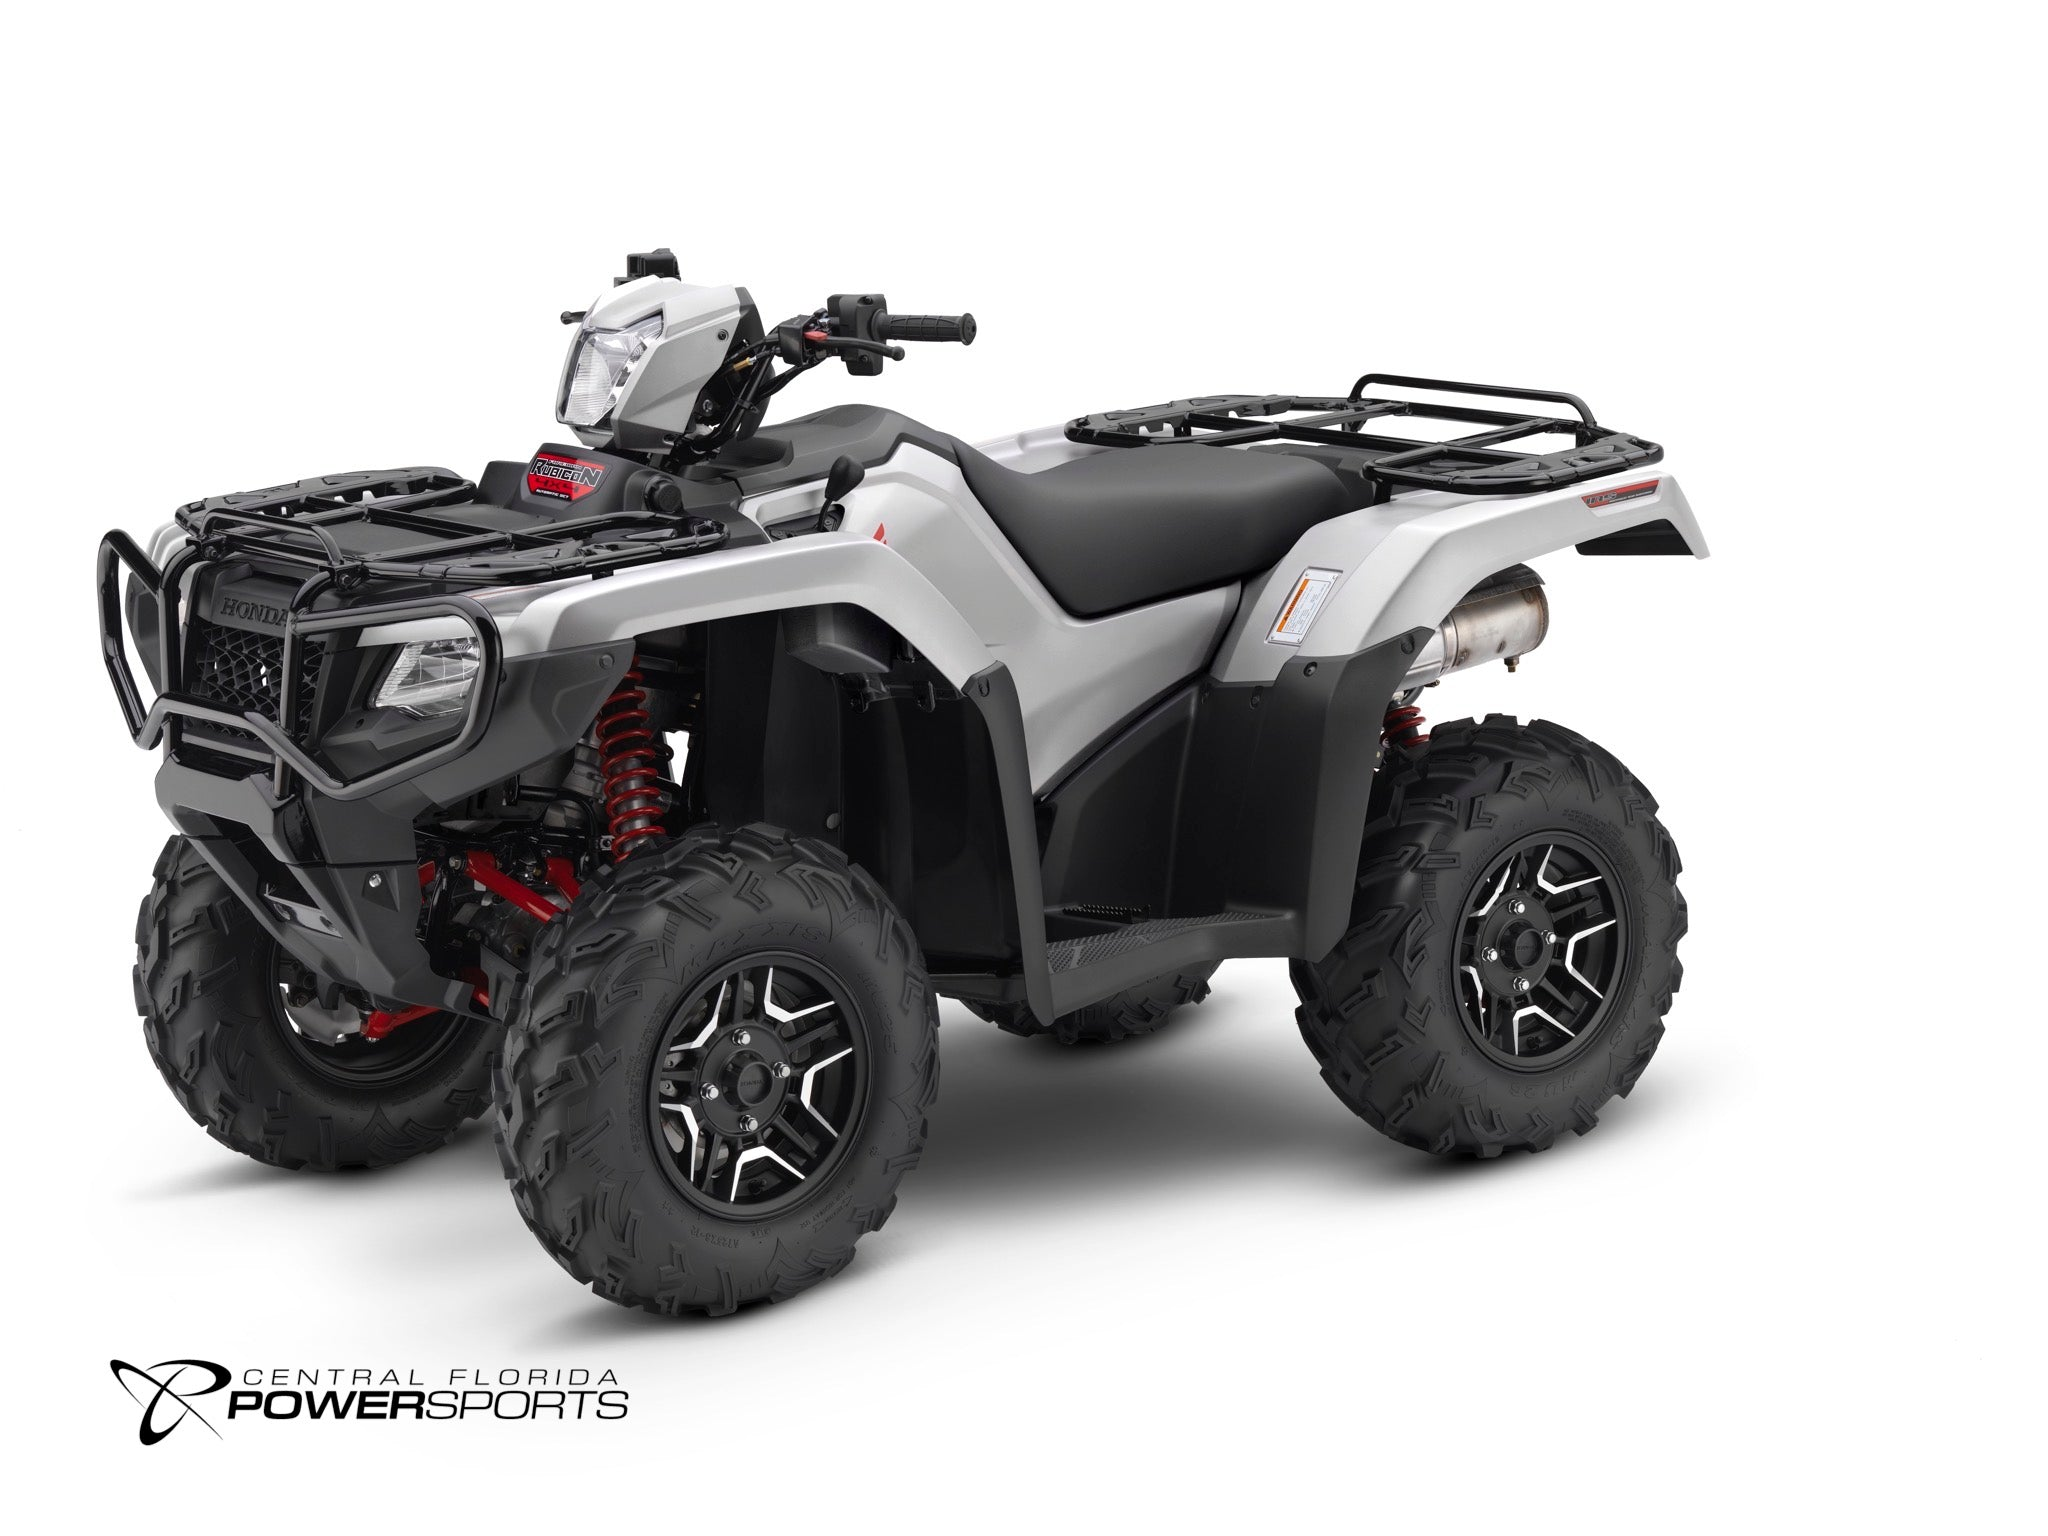 Honda Parts Wholesale Direct >> 2018 Honda Foreman Rubicon Automatic DCT EPS Deluxe ATV For Sale - Central Florida PowerSports